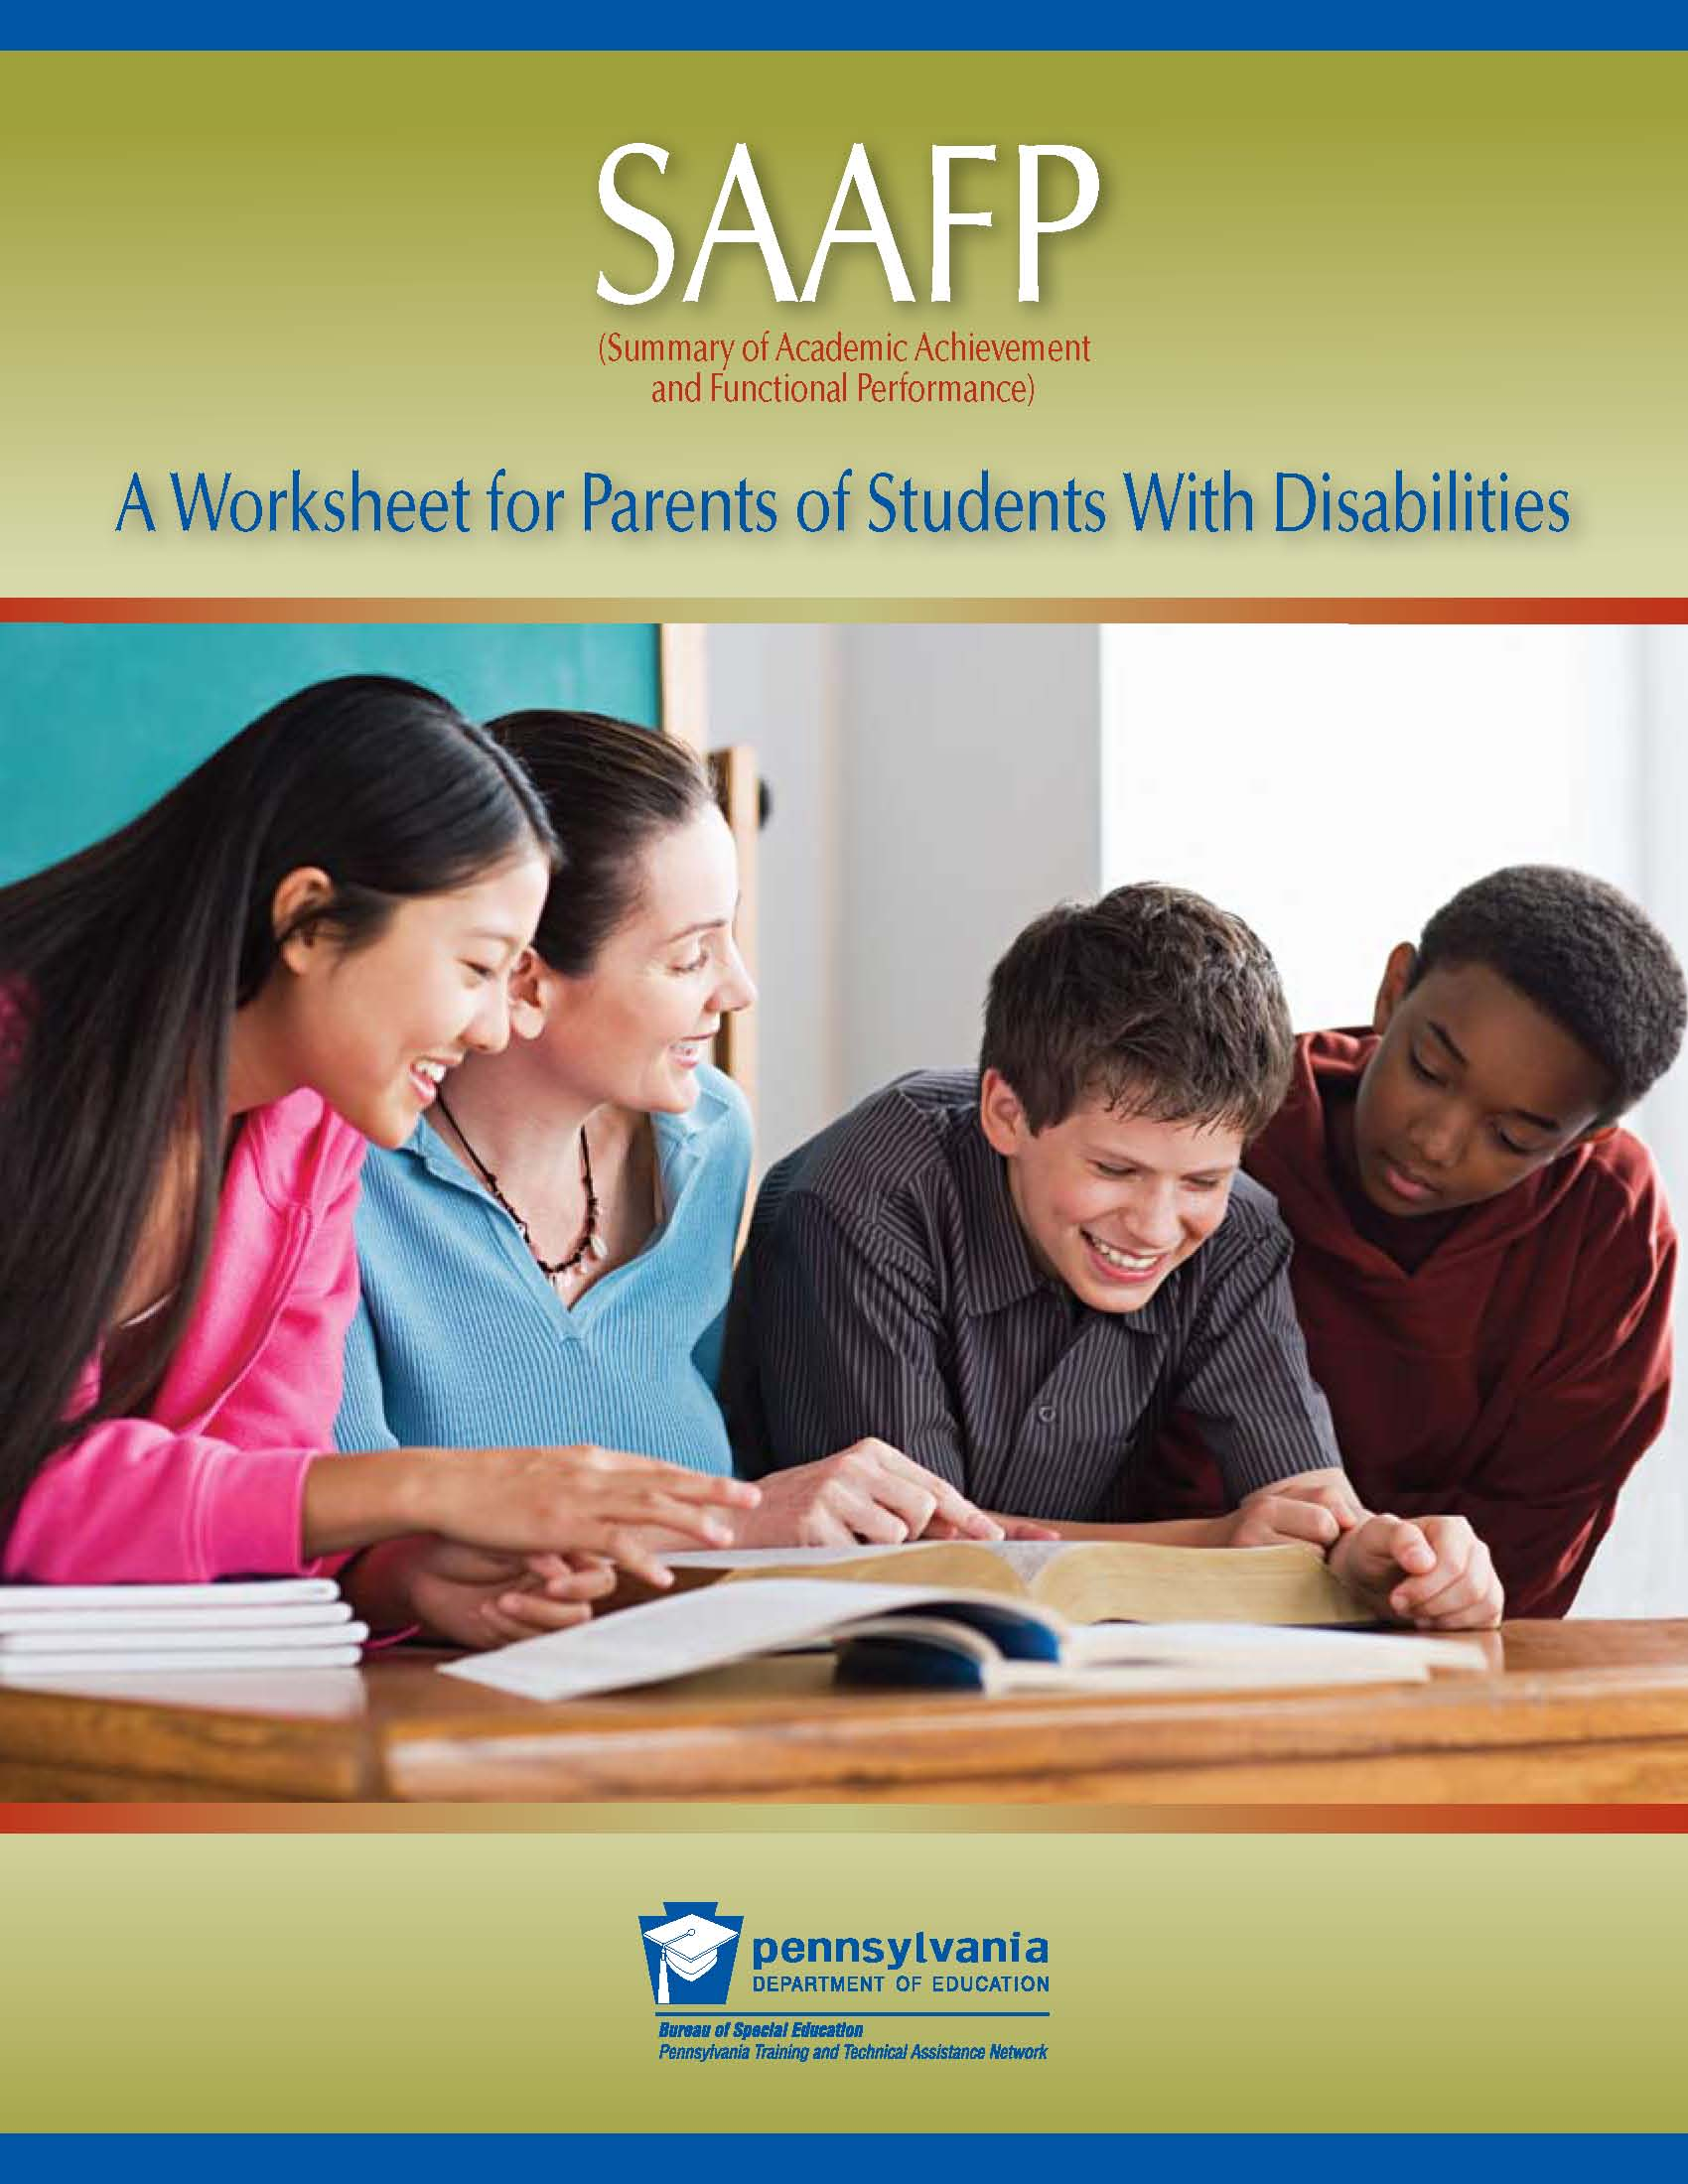 SAAFP: A Worksheet for Parents of Students with Disabilities